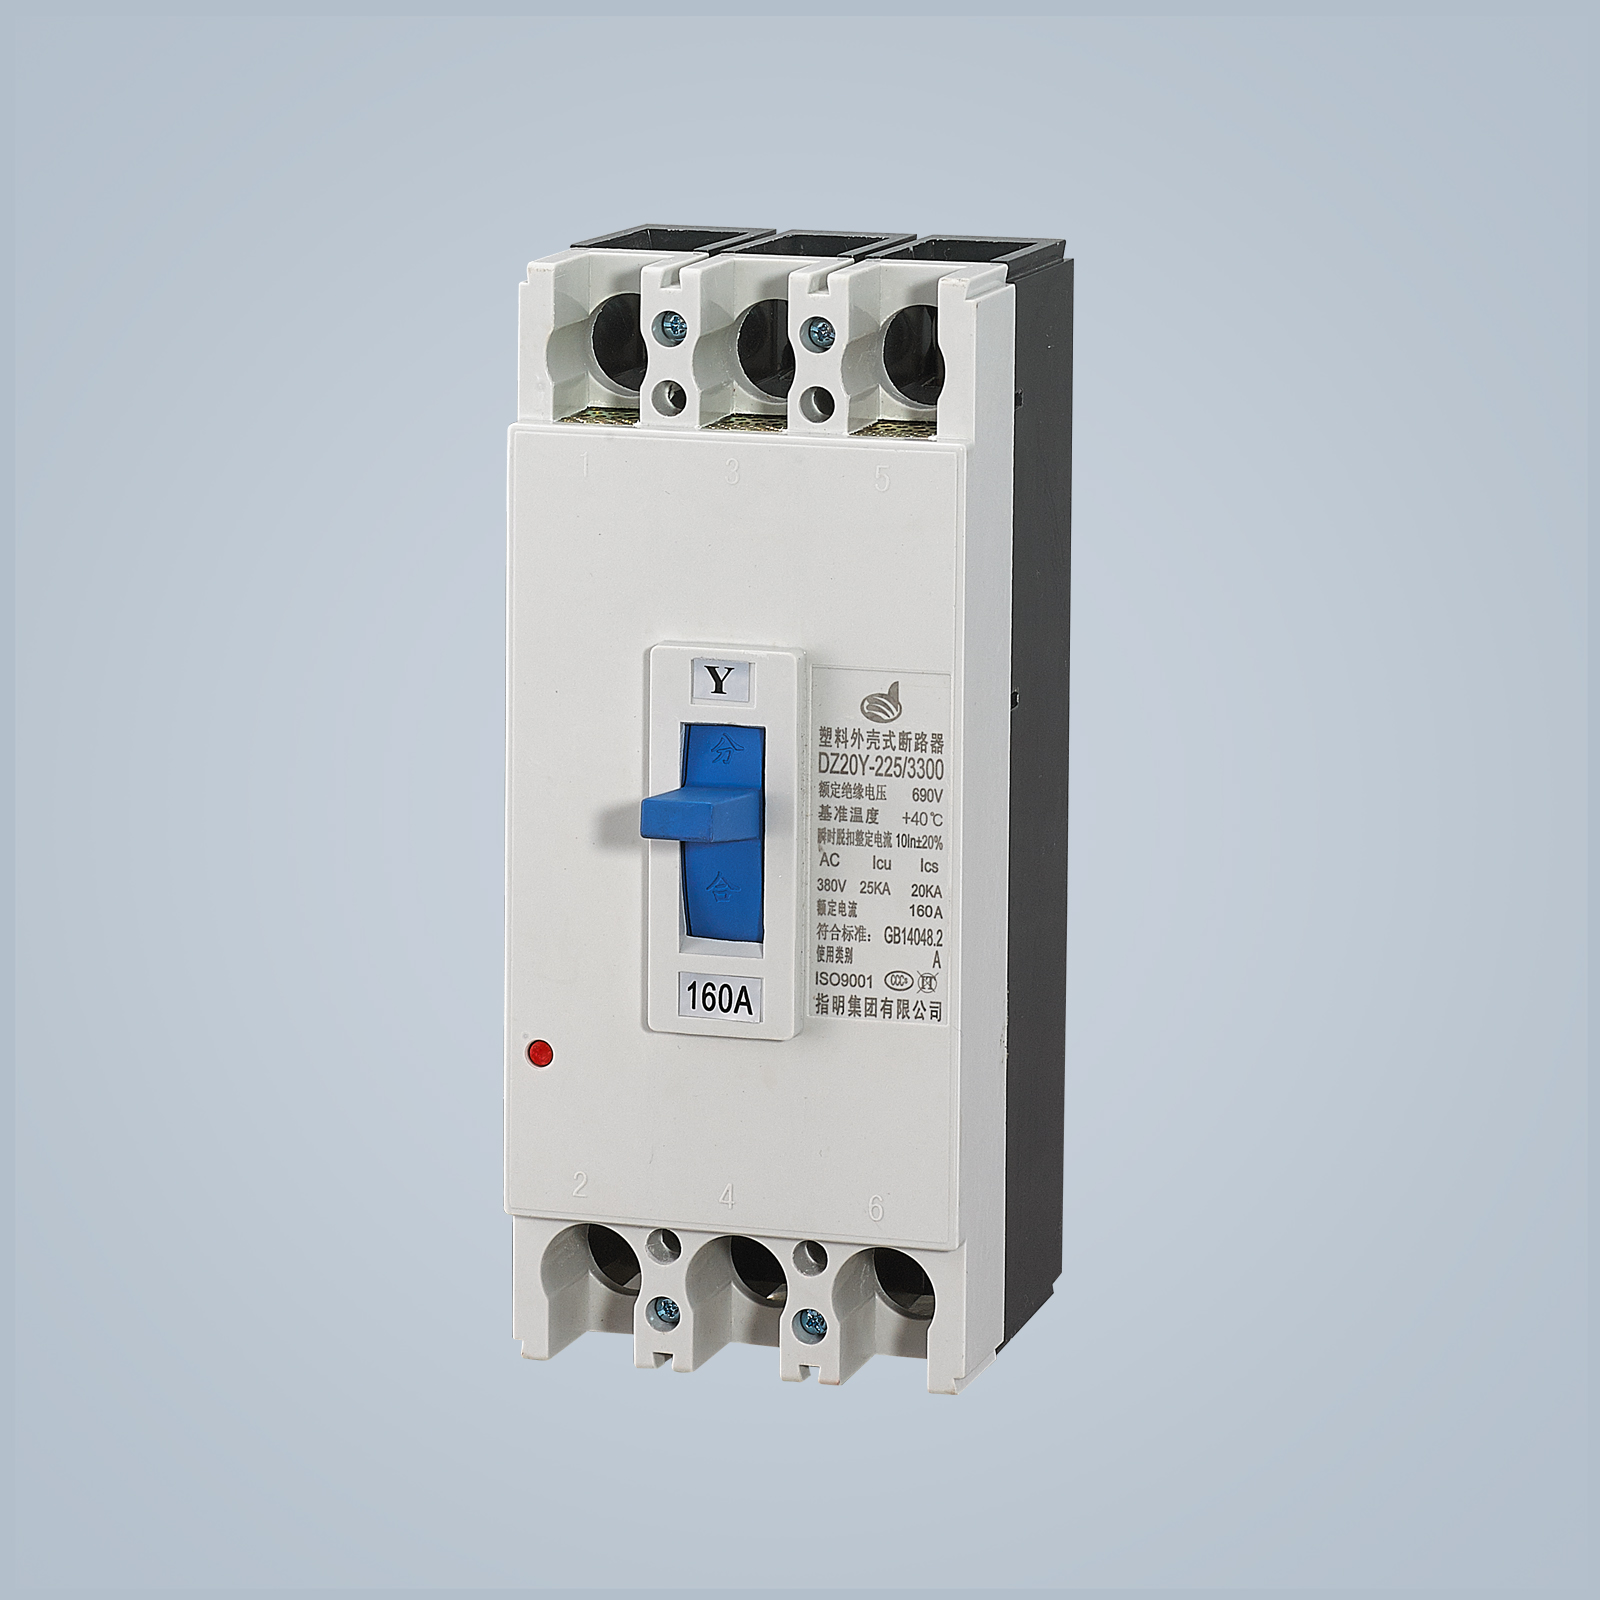 DZ20Y Series Molded Case Circuit Breaker